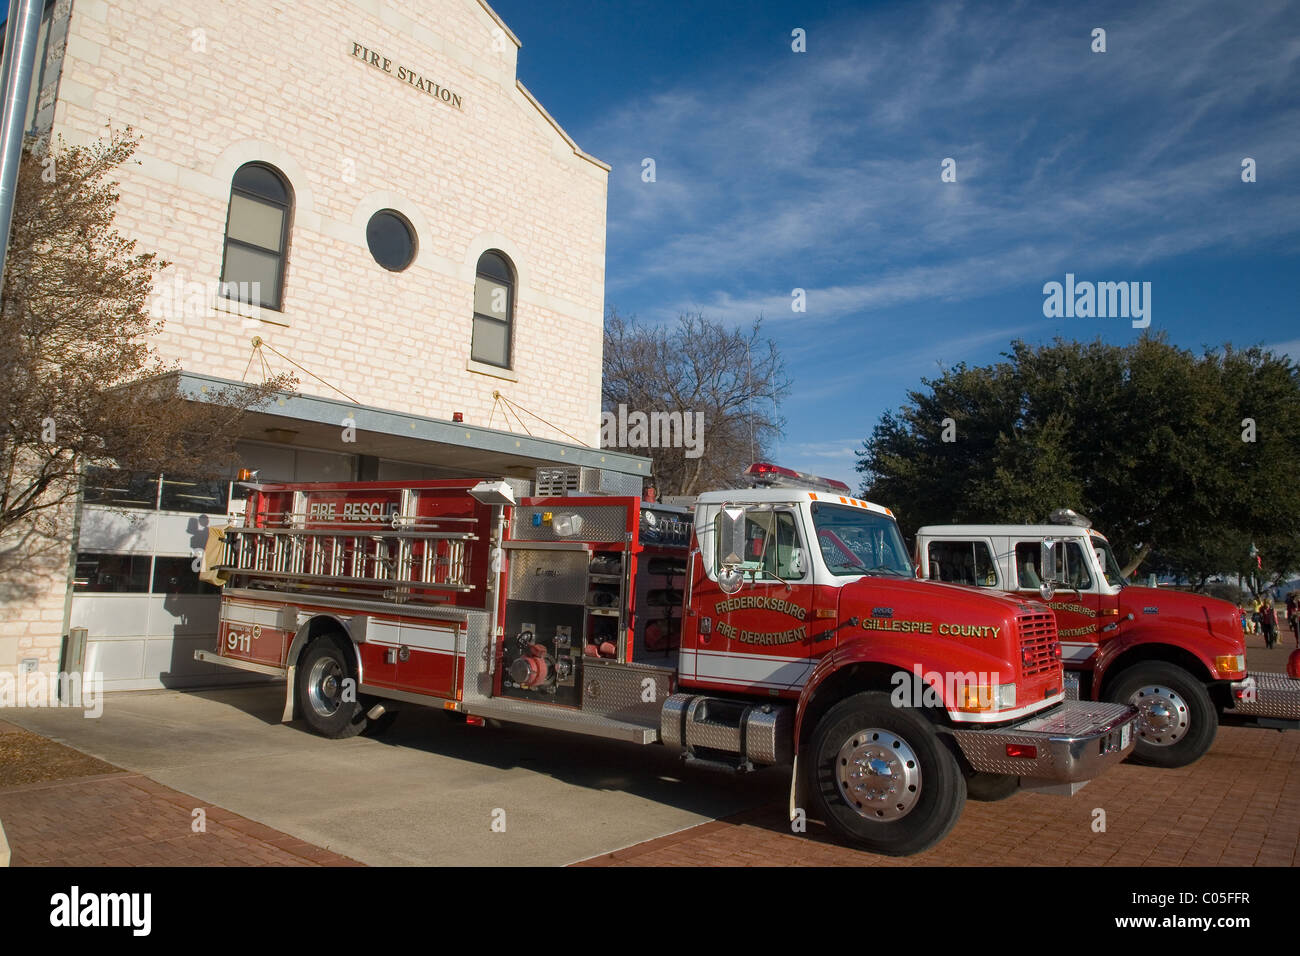 Fire Station and fire engines at Fredericksburg, Texas - Stock Image